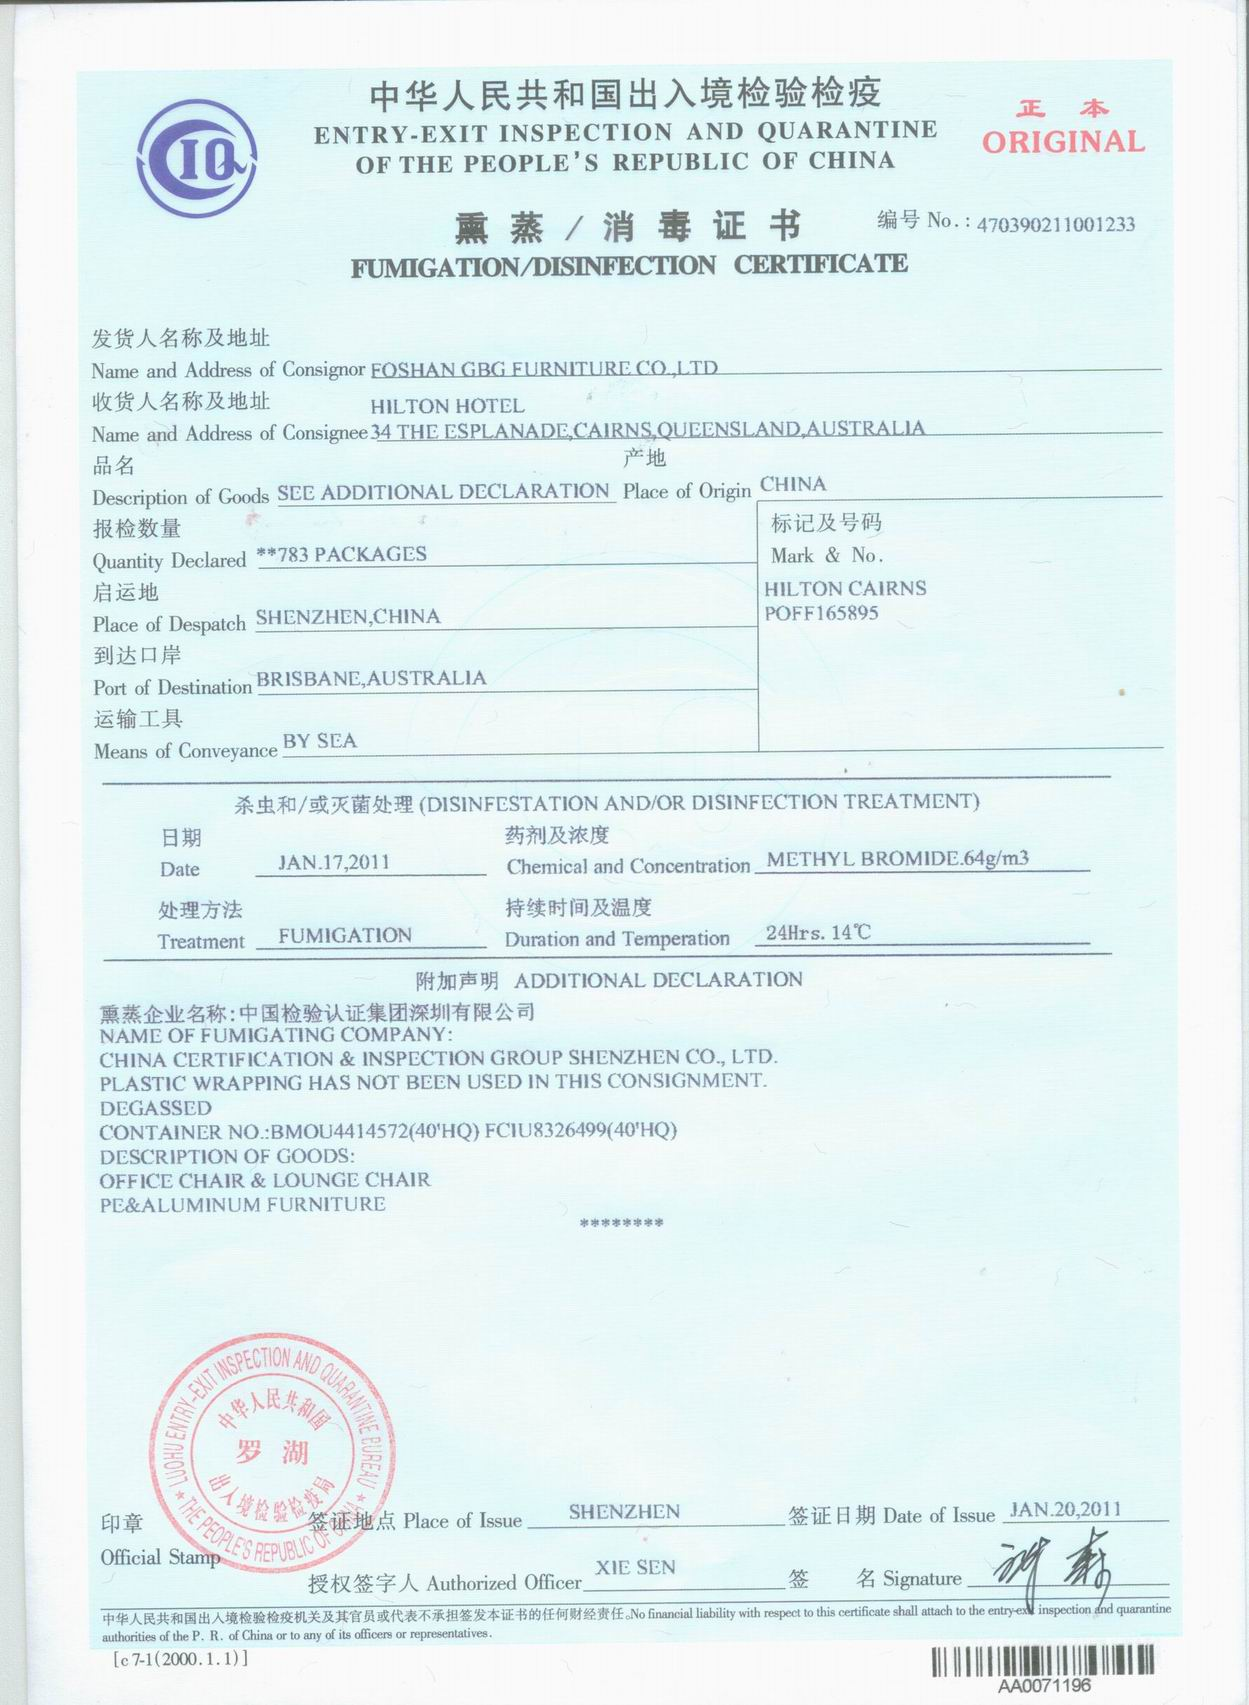 Fumigation Certificate Foshan GBG Furniture Co Ltd